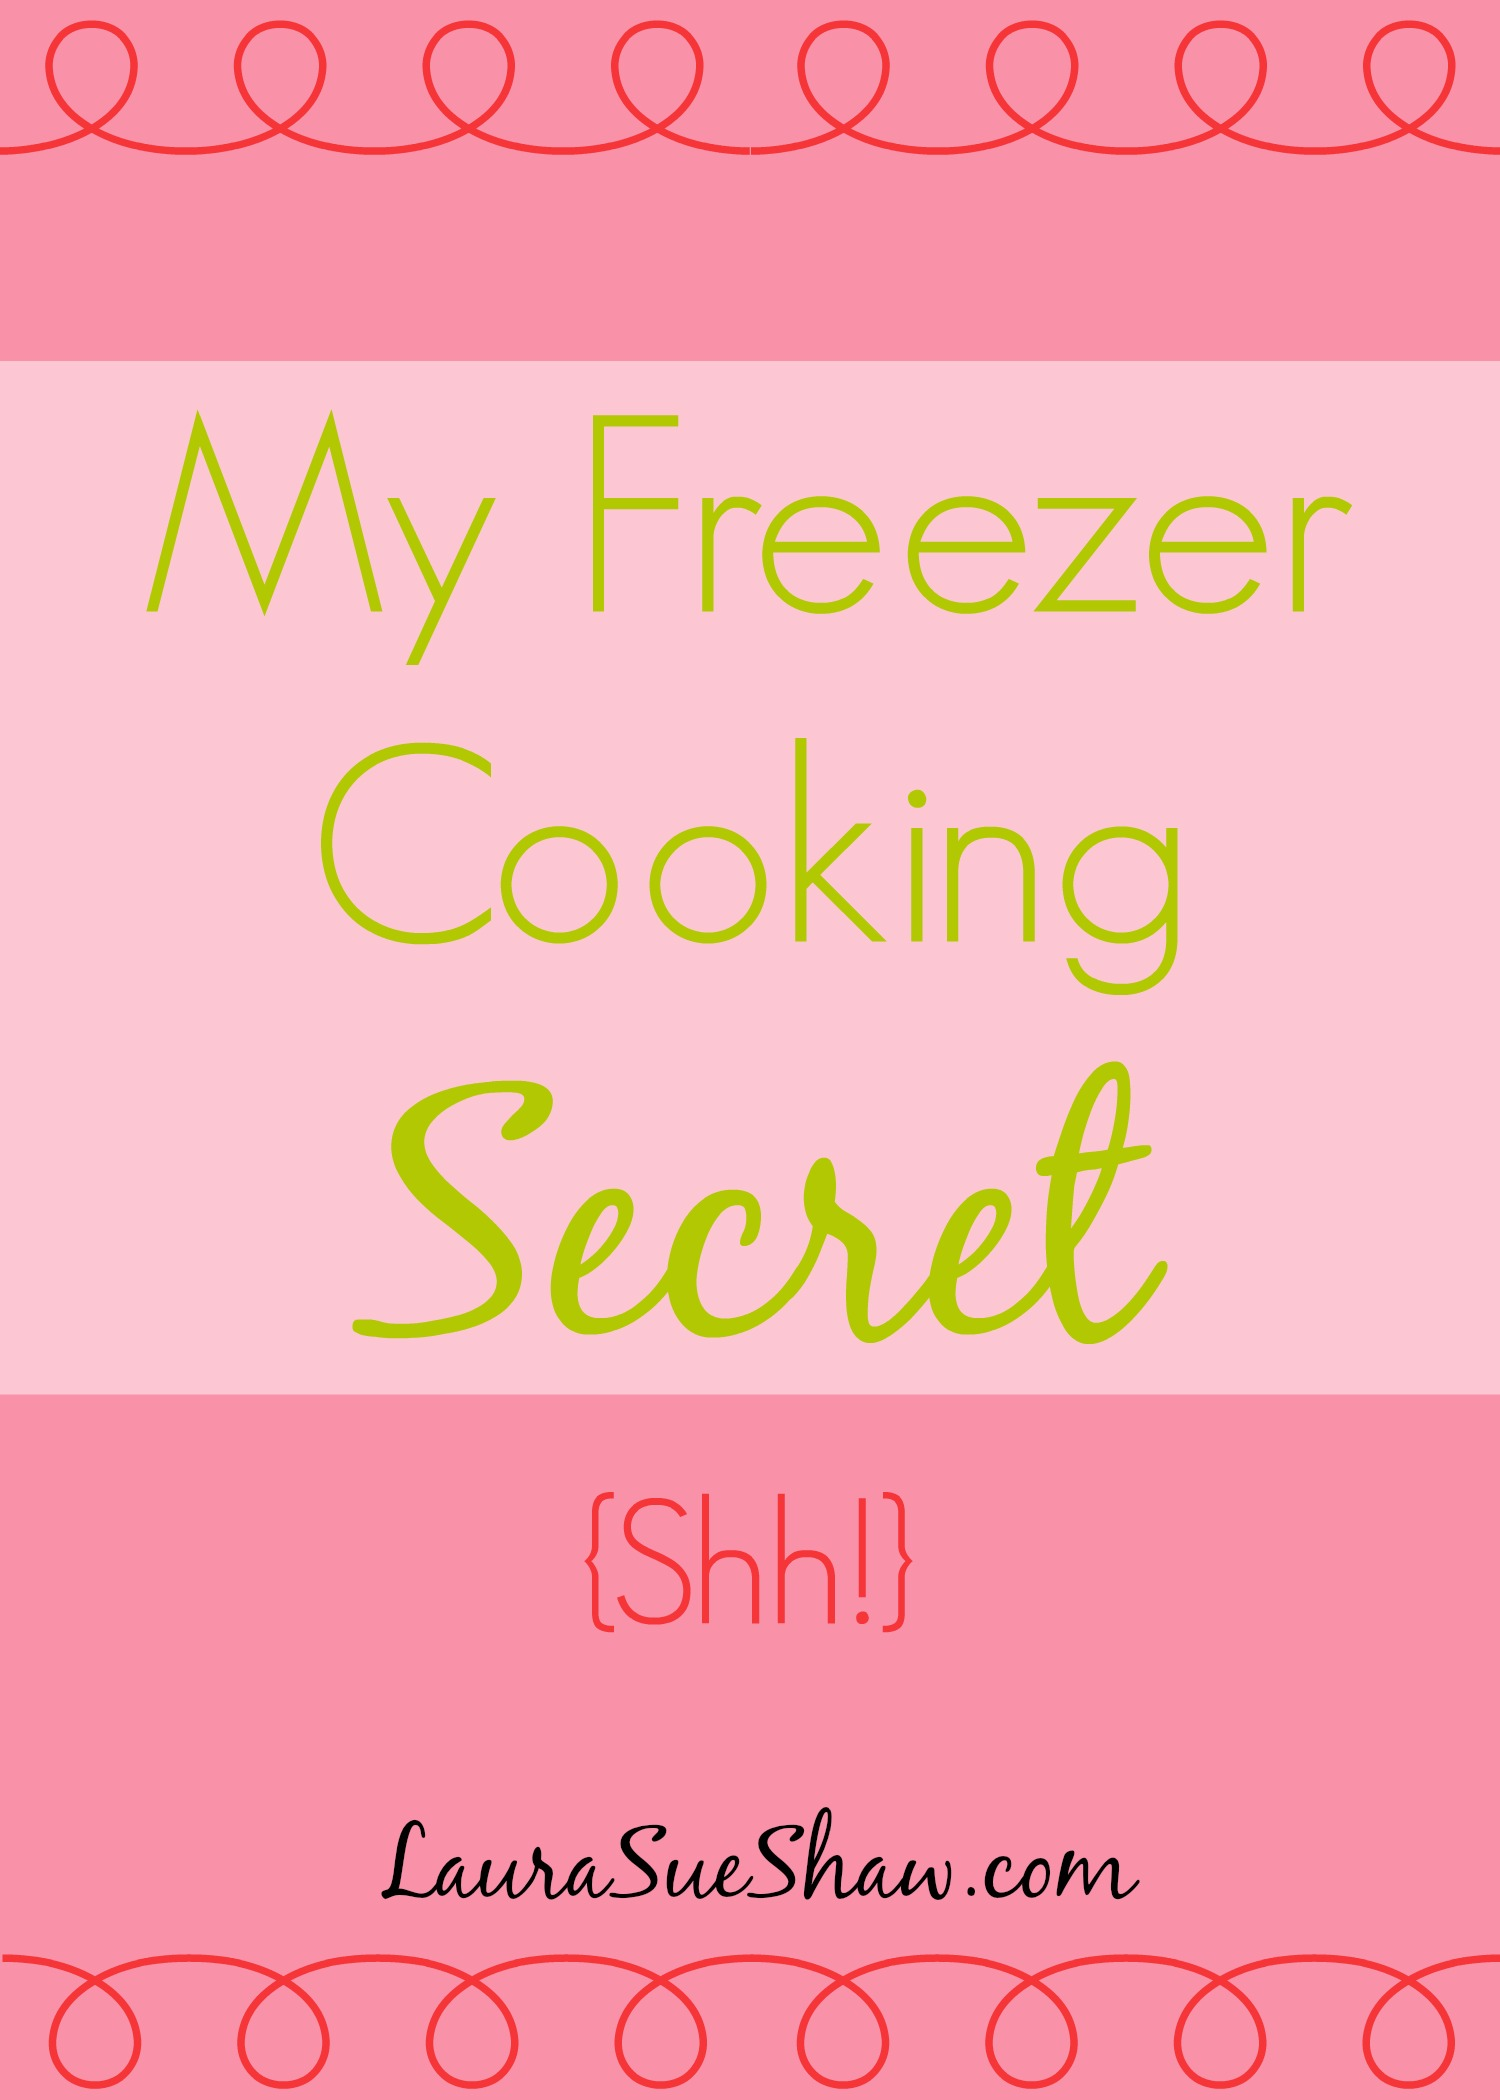 My Freezer Cooking Secret